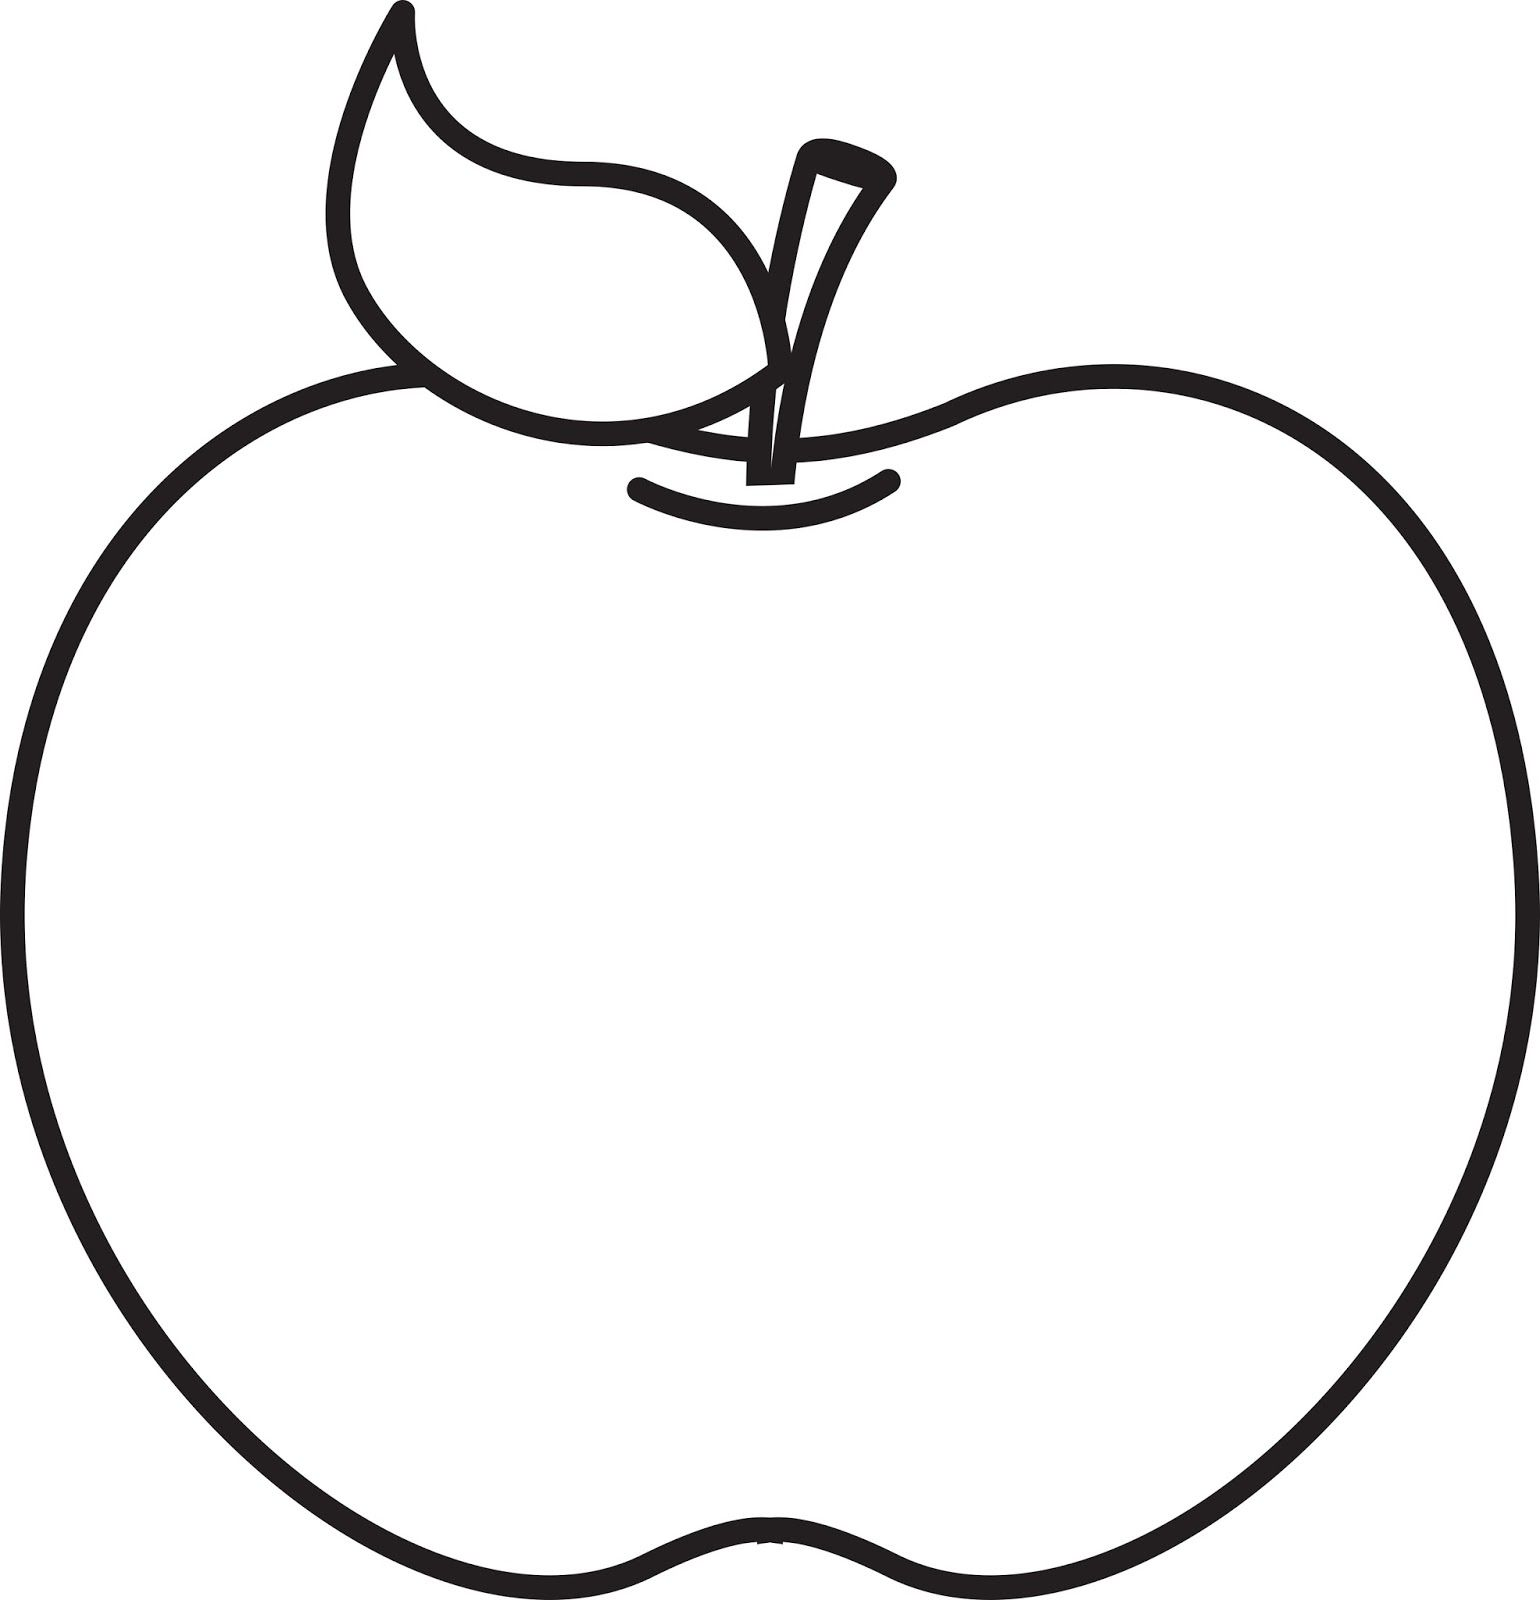 Apple black and white apple clipart black and white.